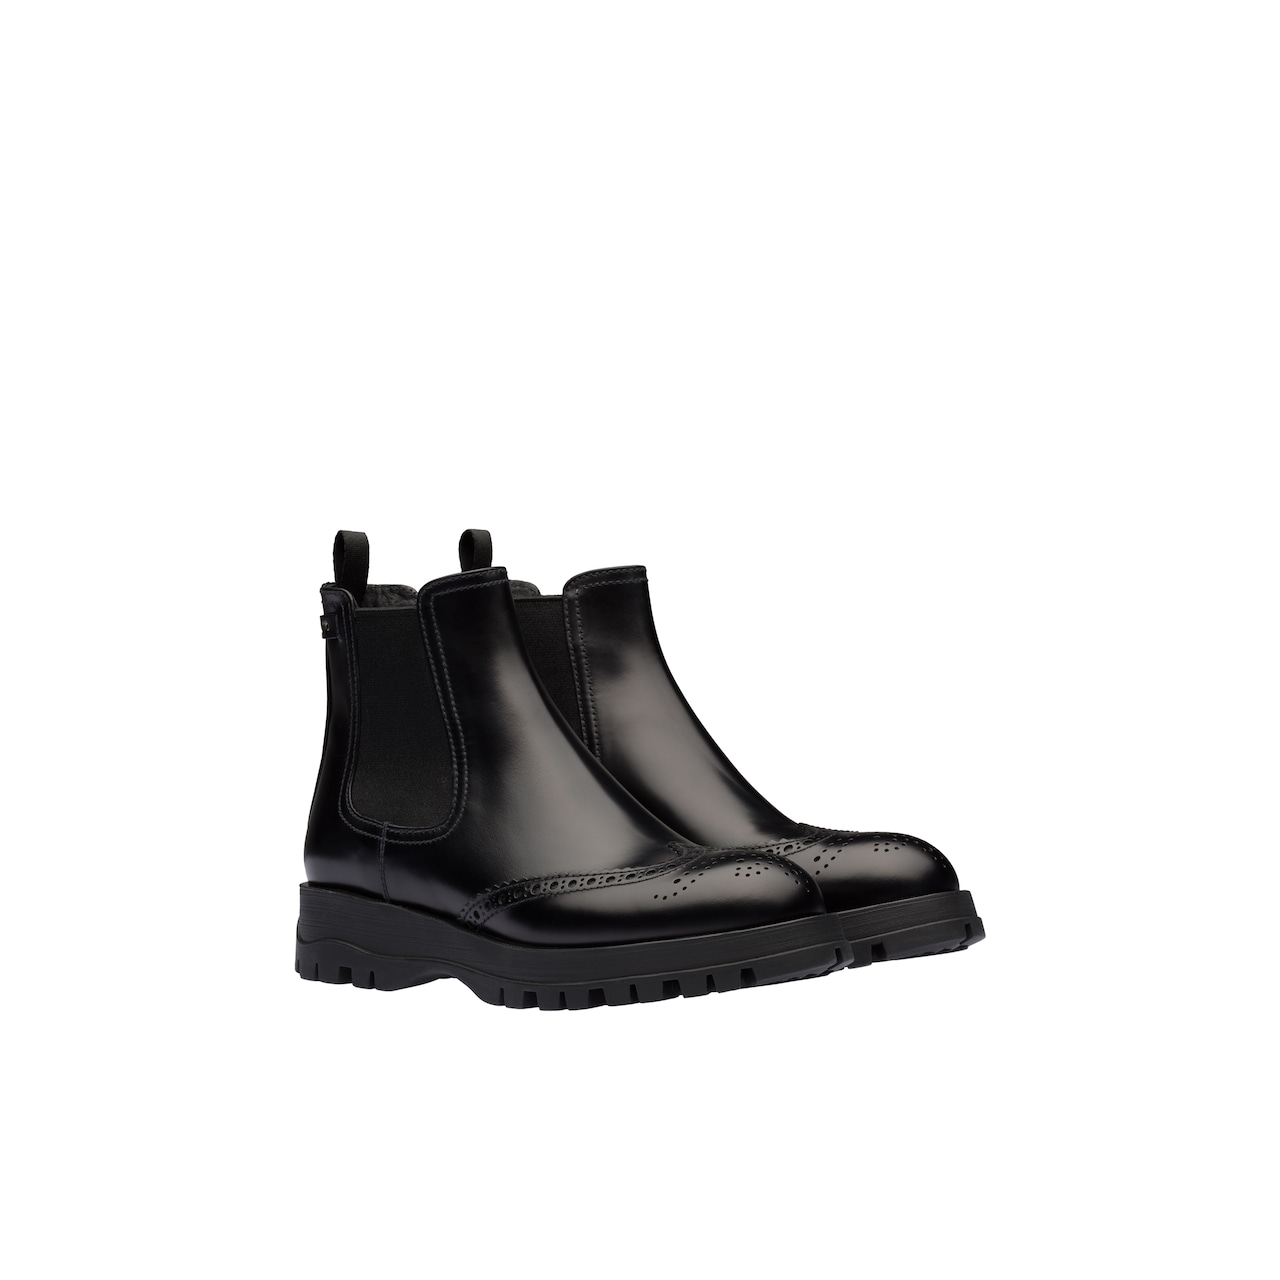 Prada Brushed leather booties 1